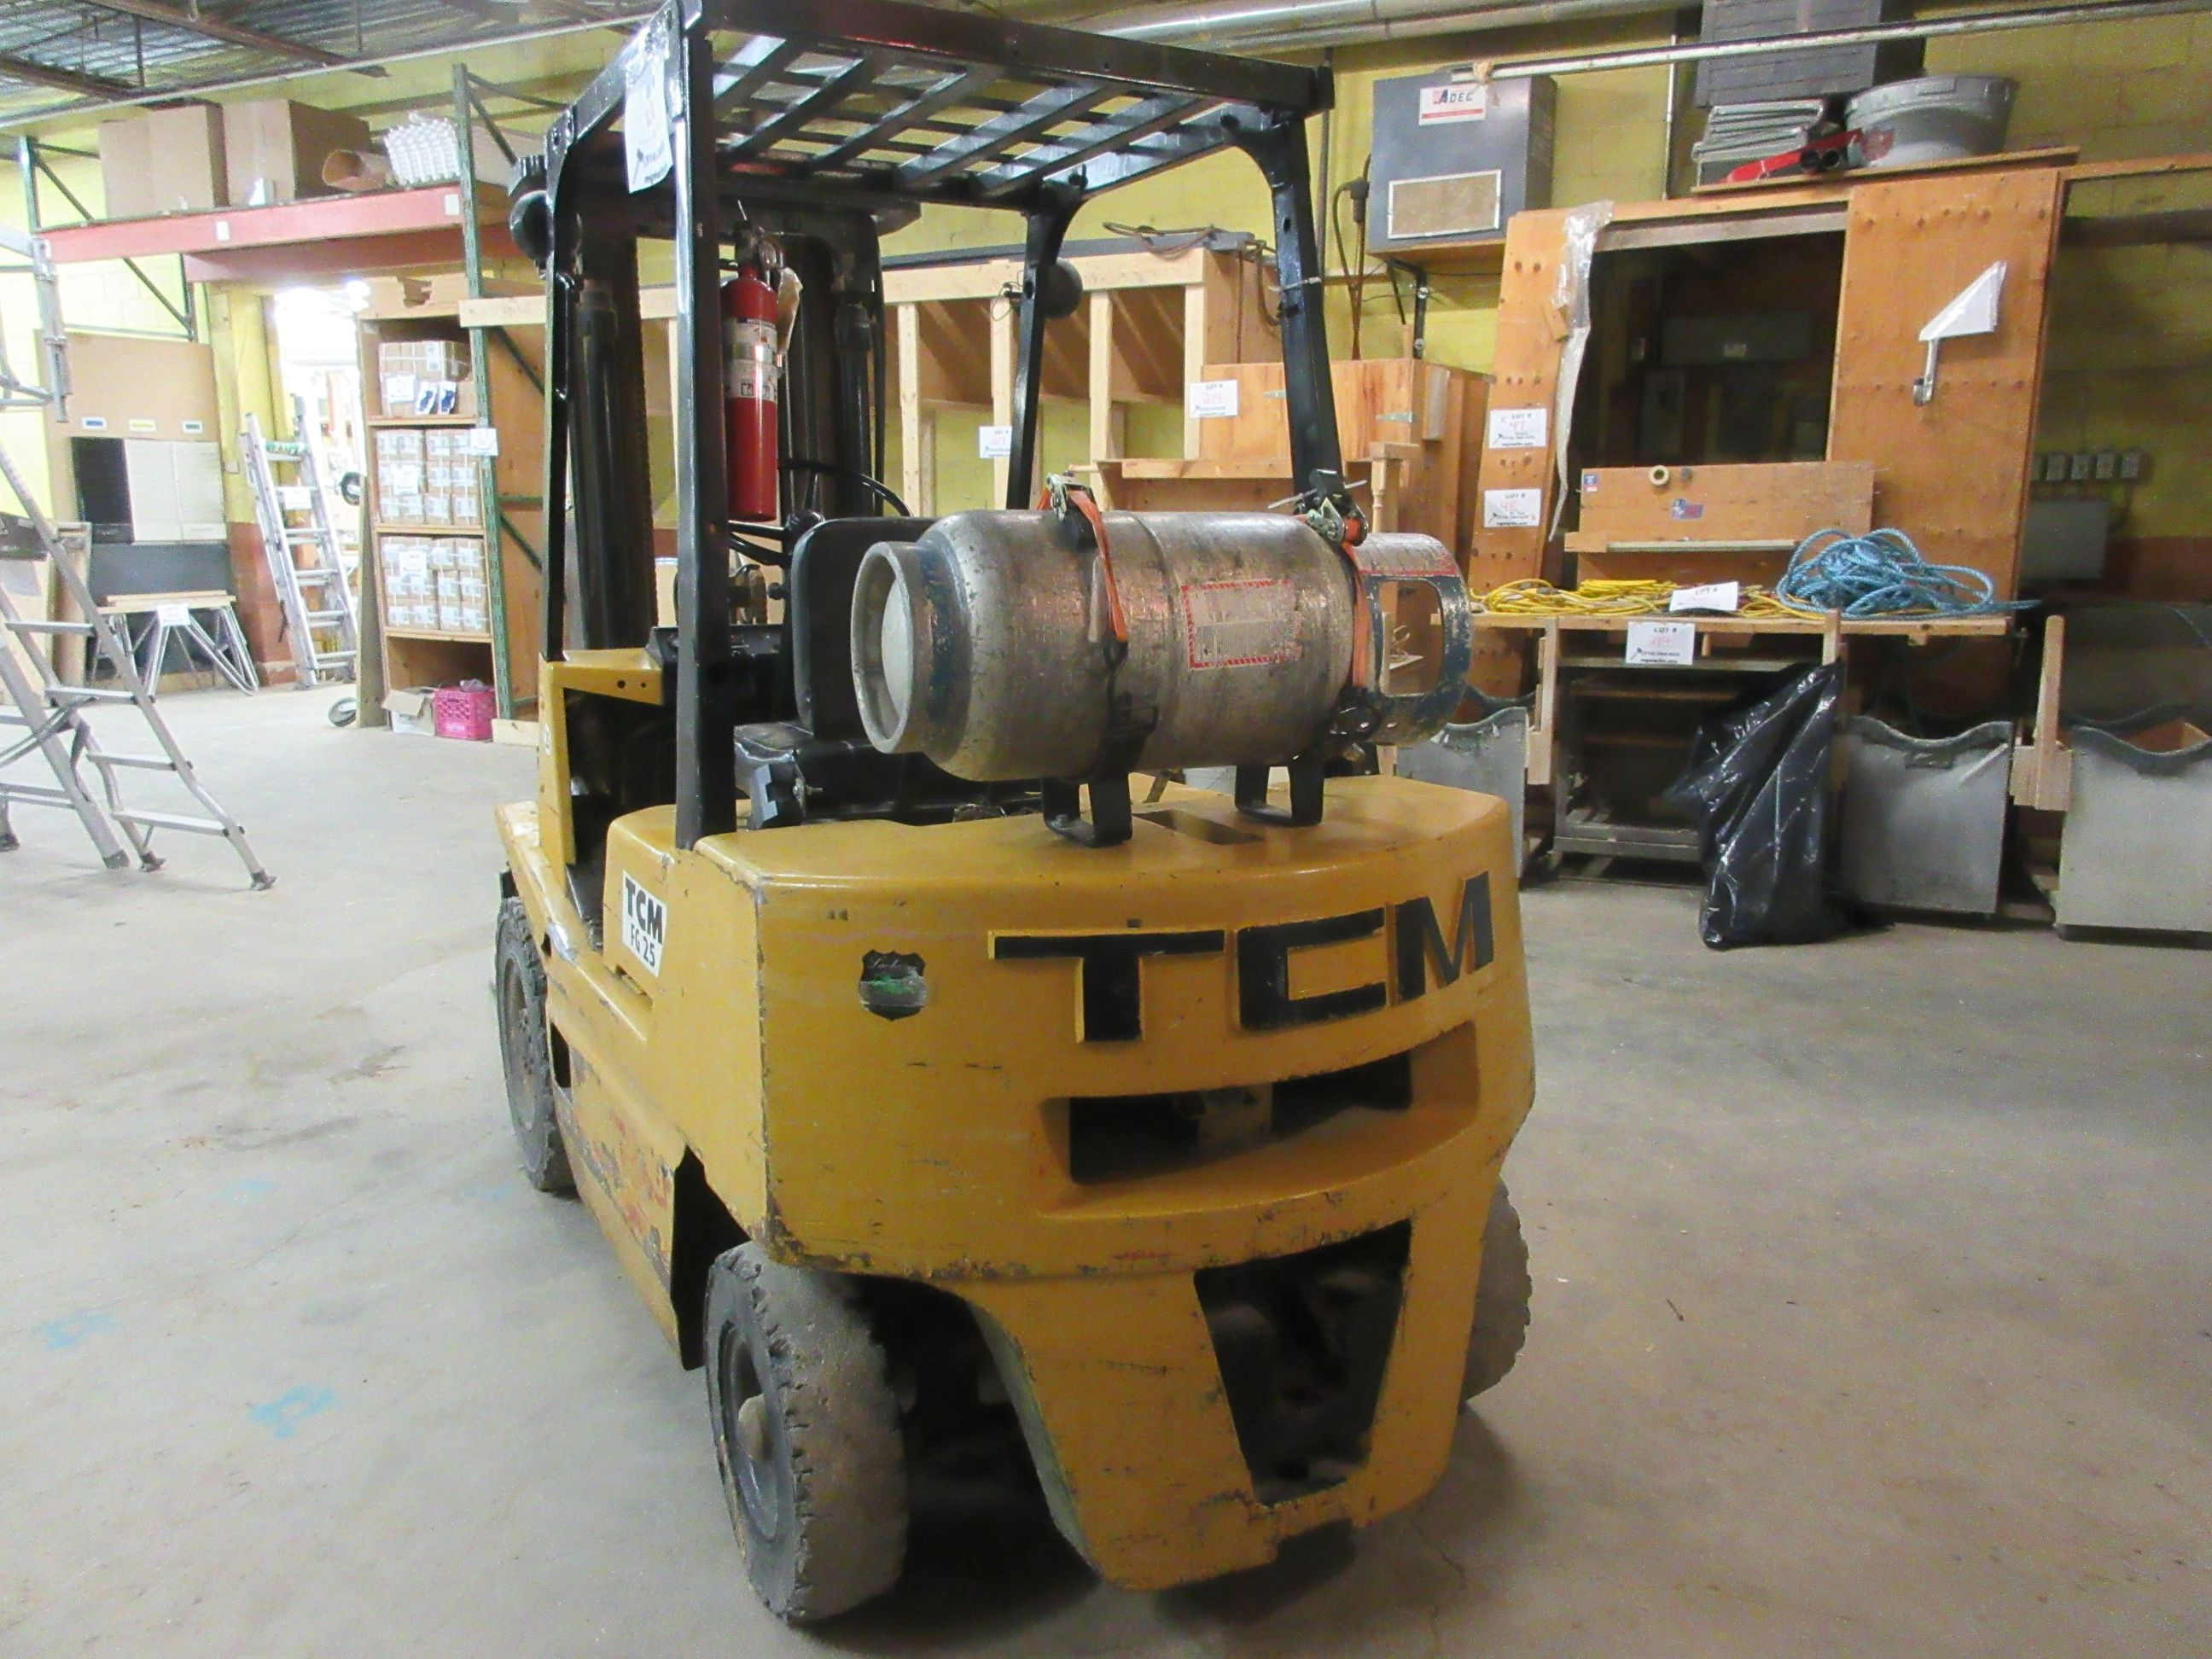 TCM propane forklift, Mod: FG25, 3 sections, CAP: 5,000 lbs - Image 4 of 6